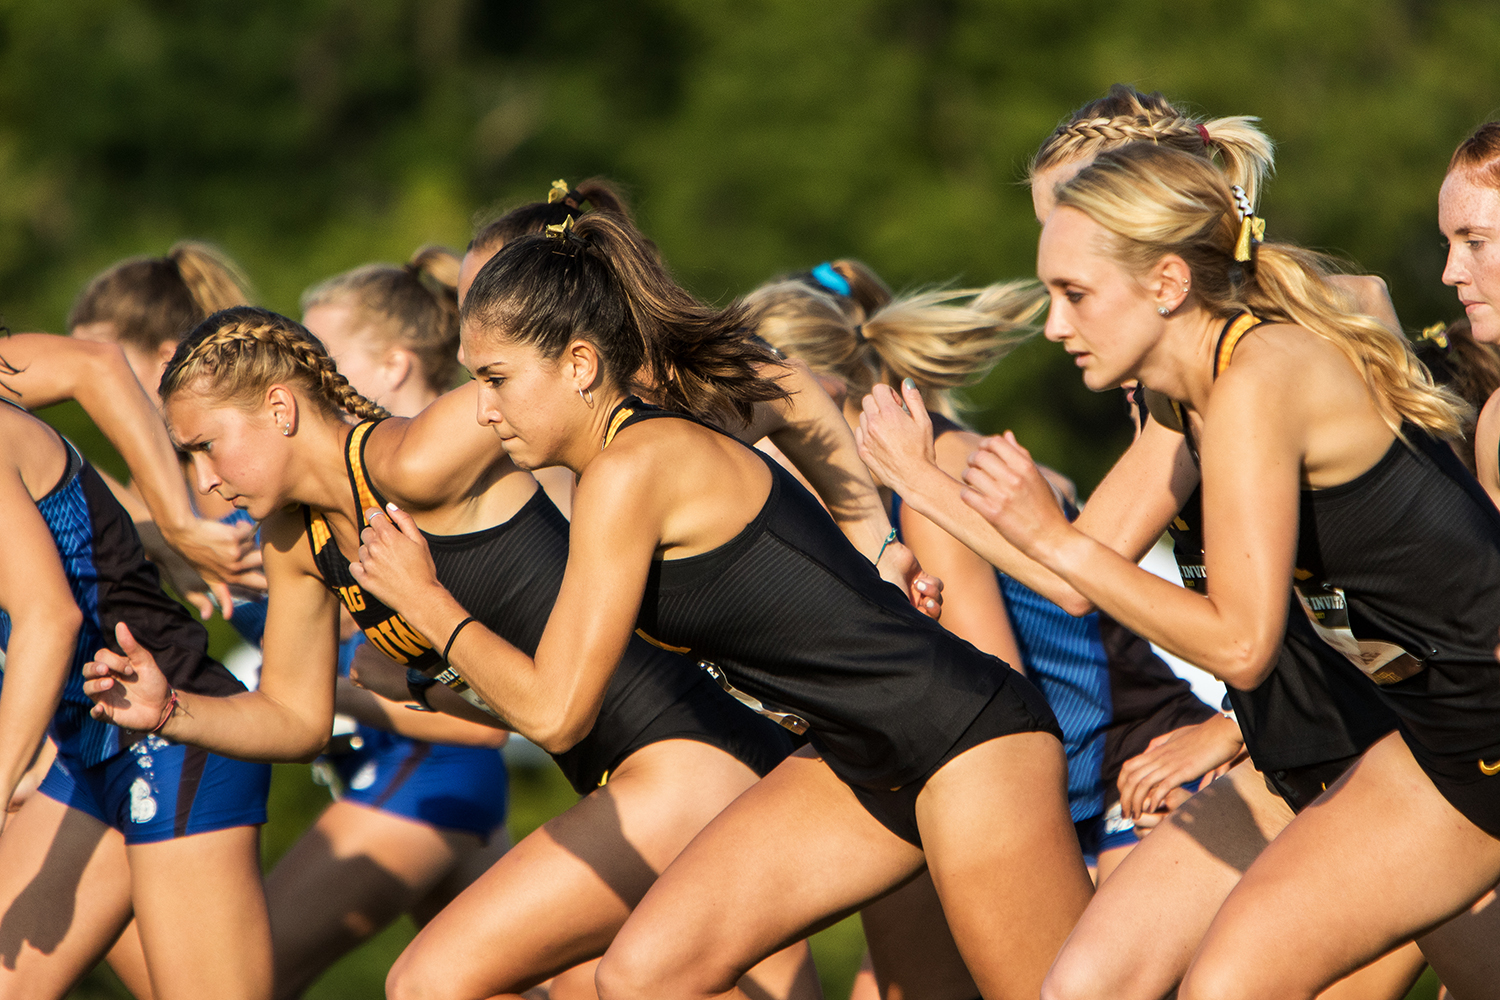 The Iowa Women's Cross Country team sprints out of the box at the start of the Hawkeye Invitational Cross Country meet on Friday, Sept. 1, 2017.